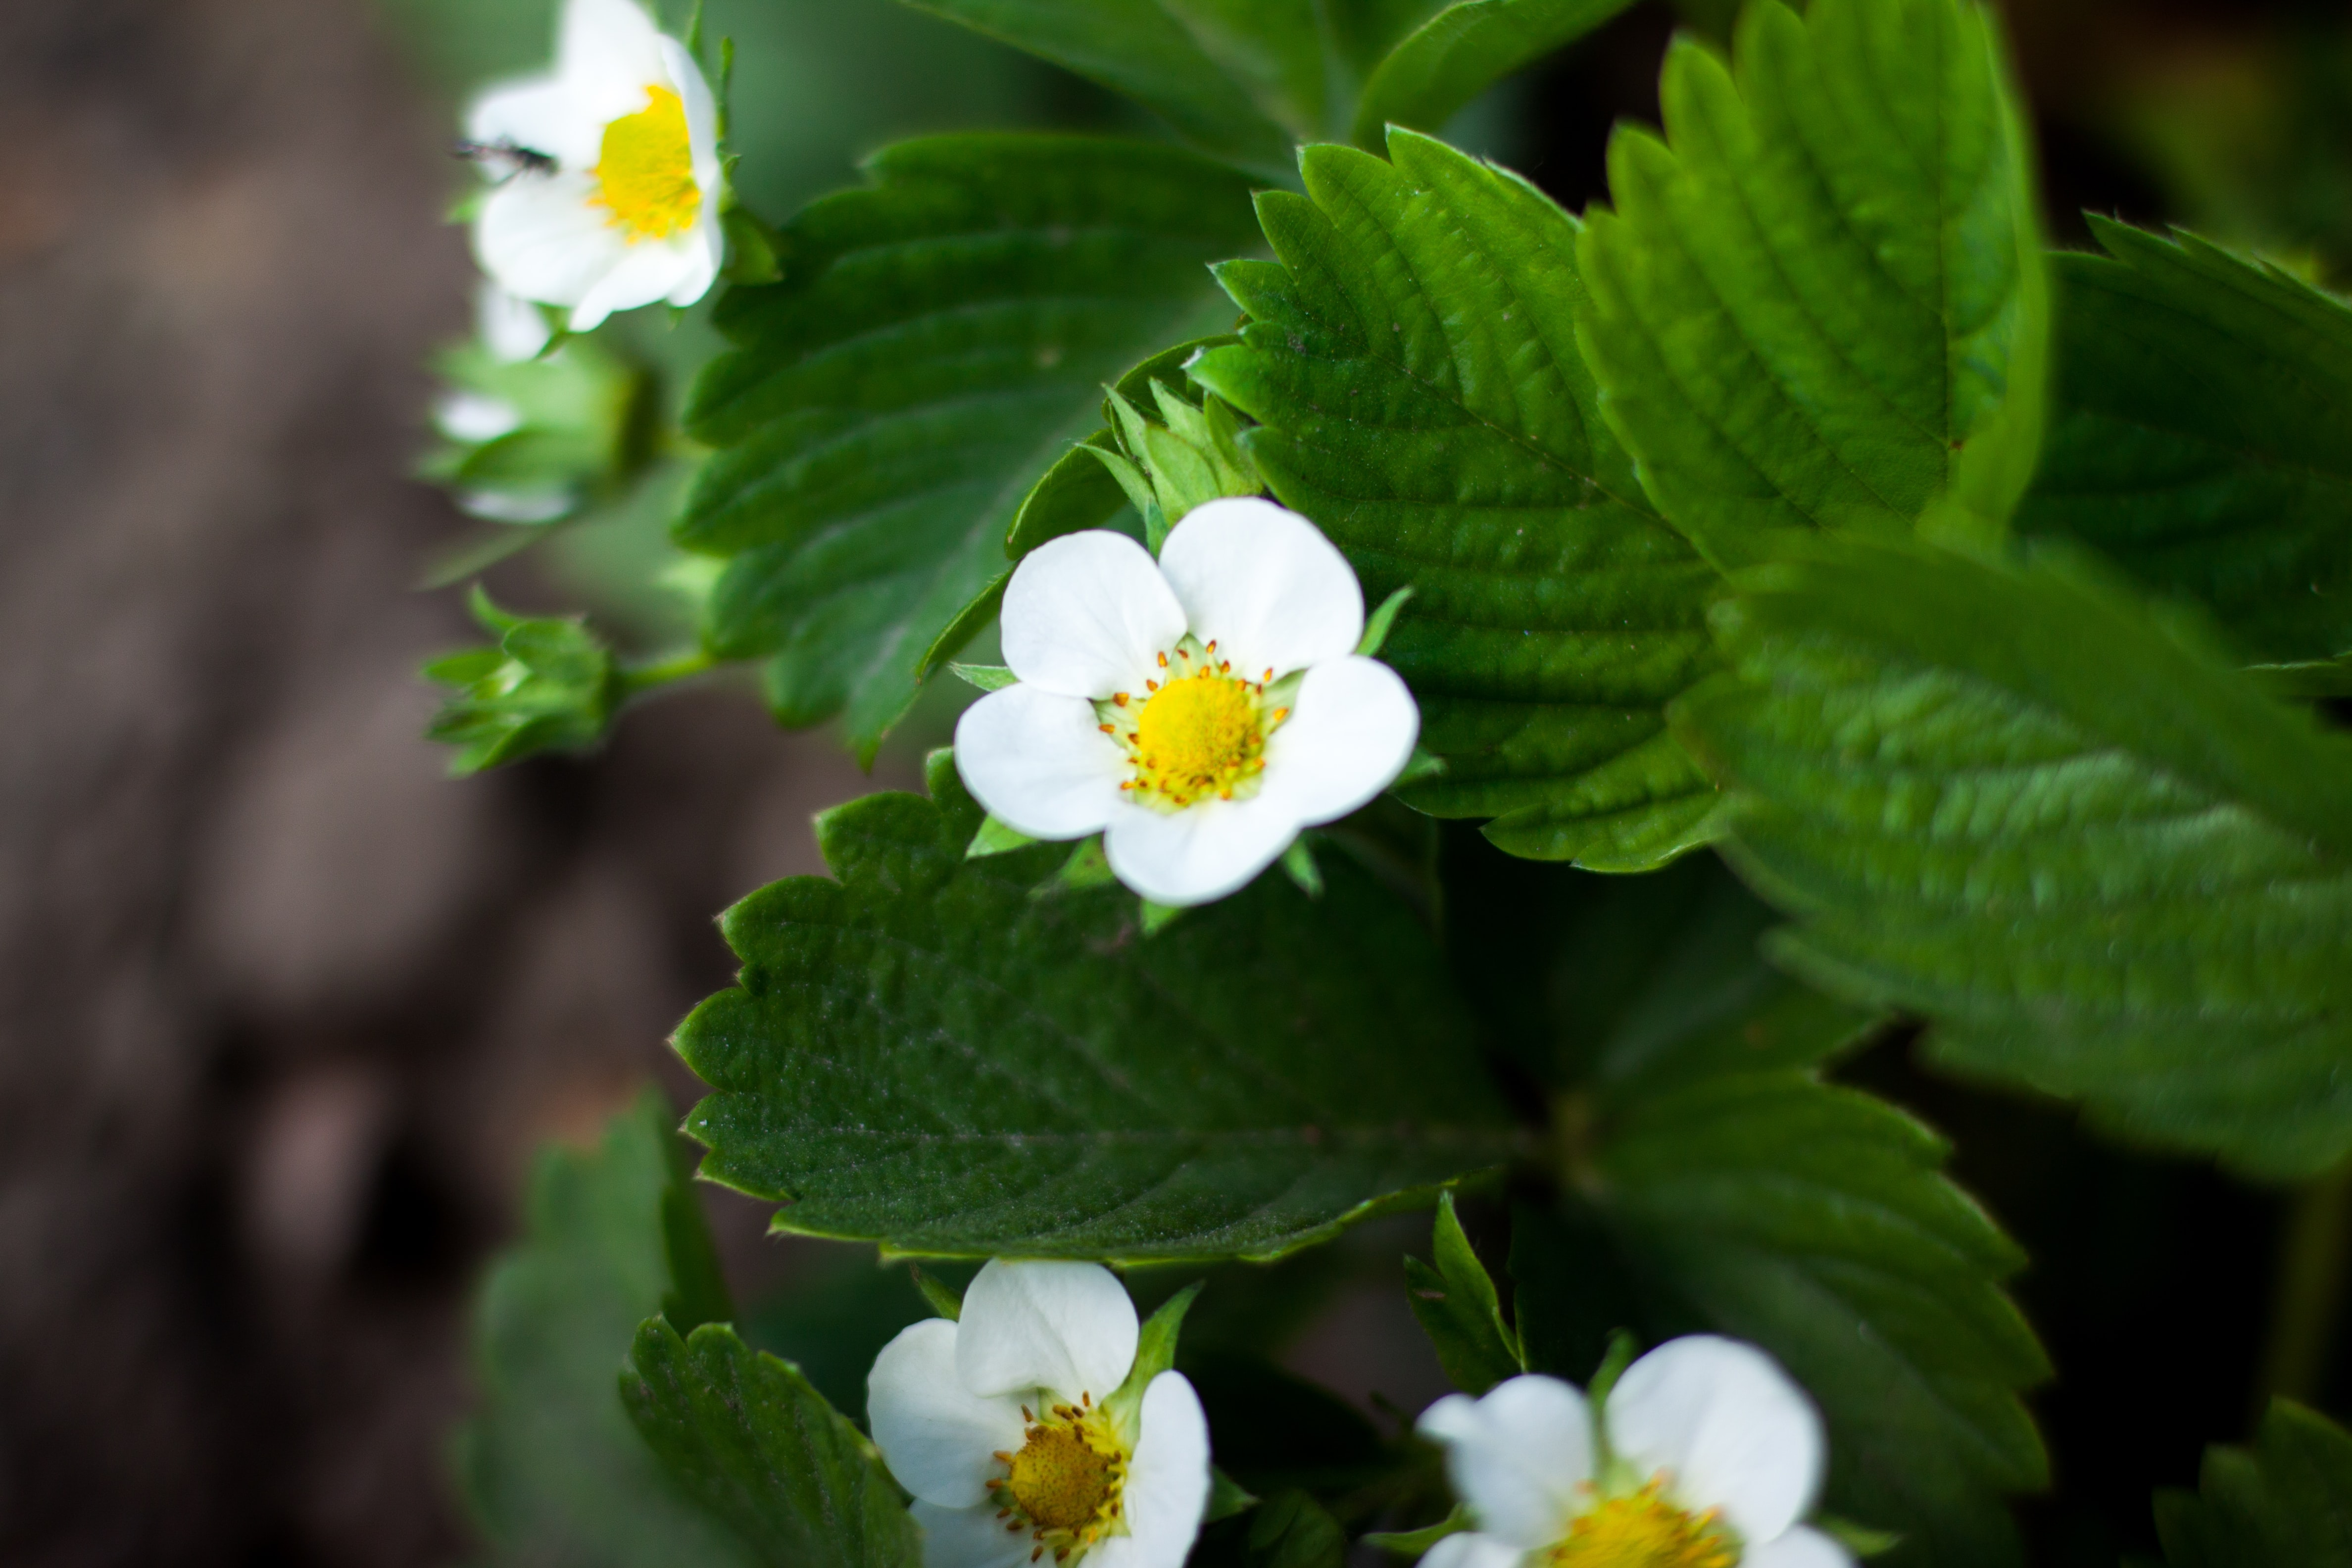 Close-up of white strawberry flowers